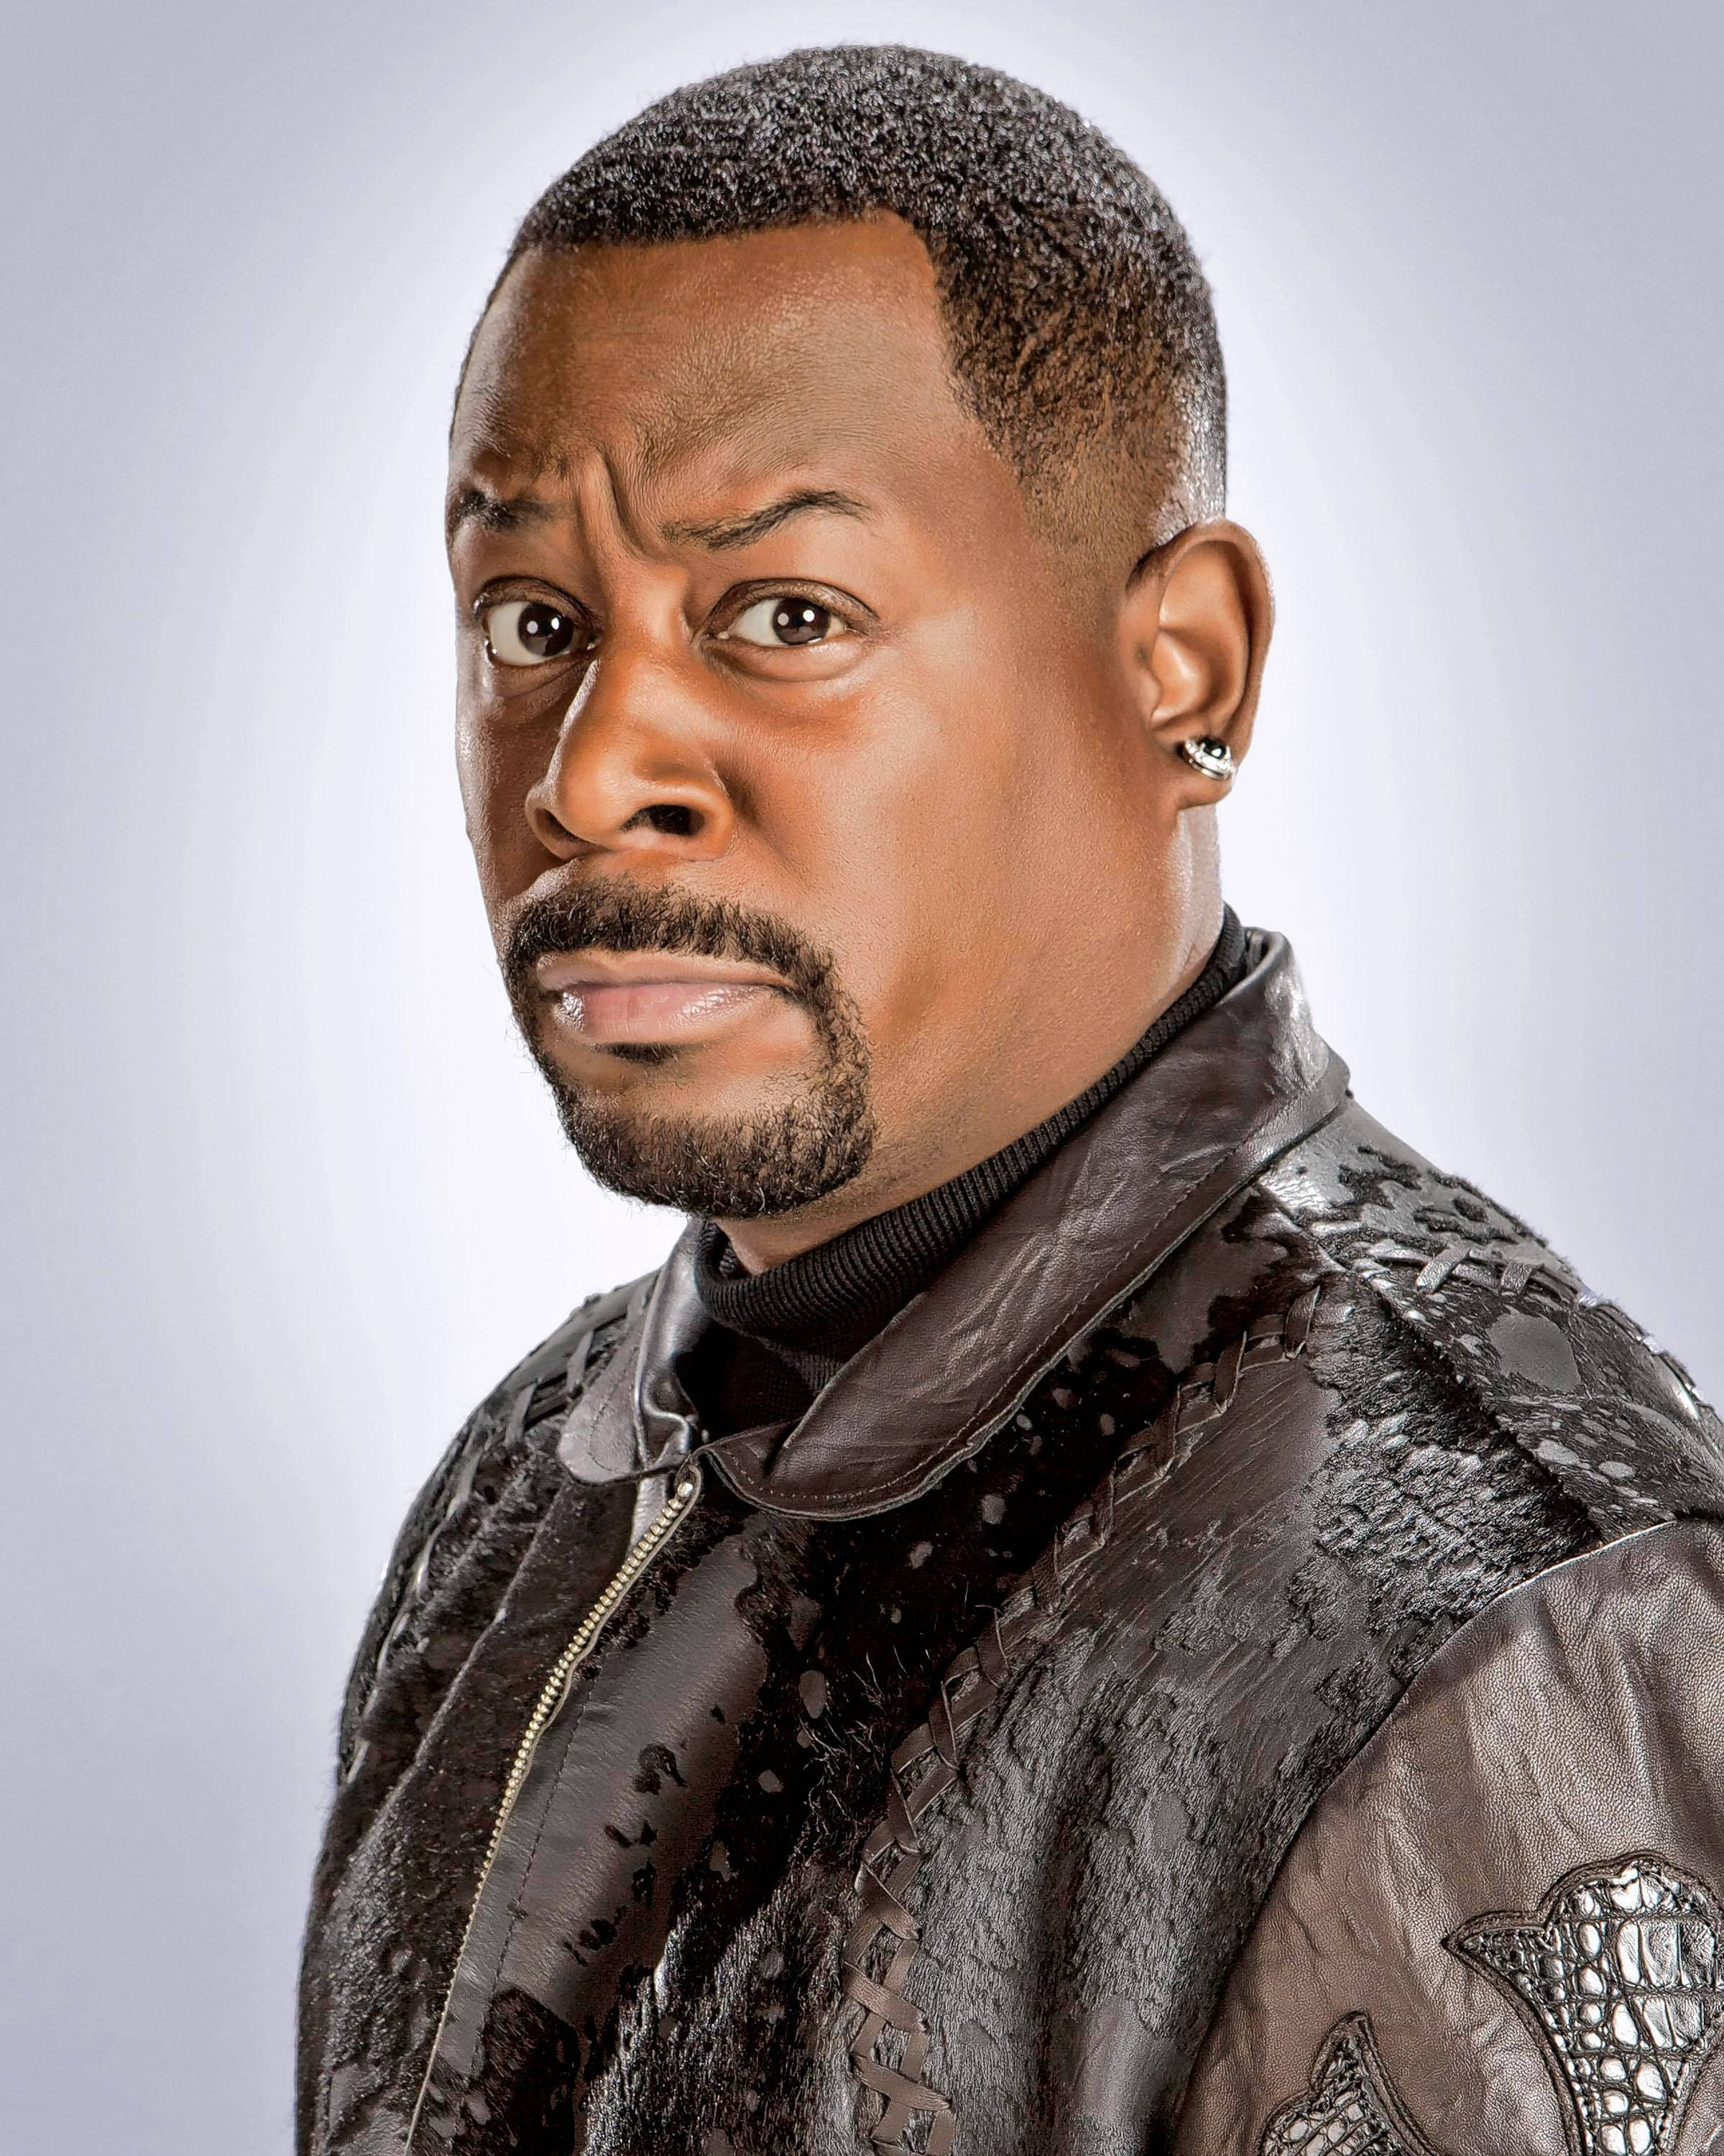 Comedian Martin Lawrence performs at the Chicago Theatre.